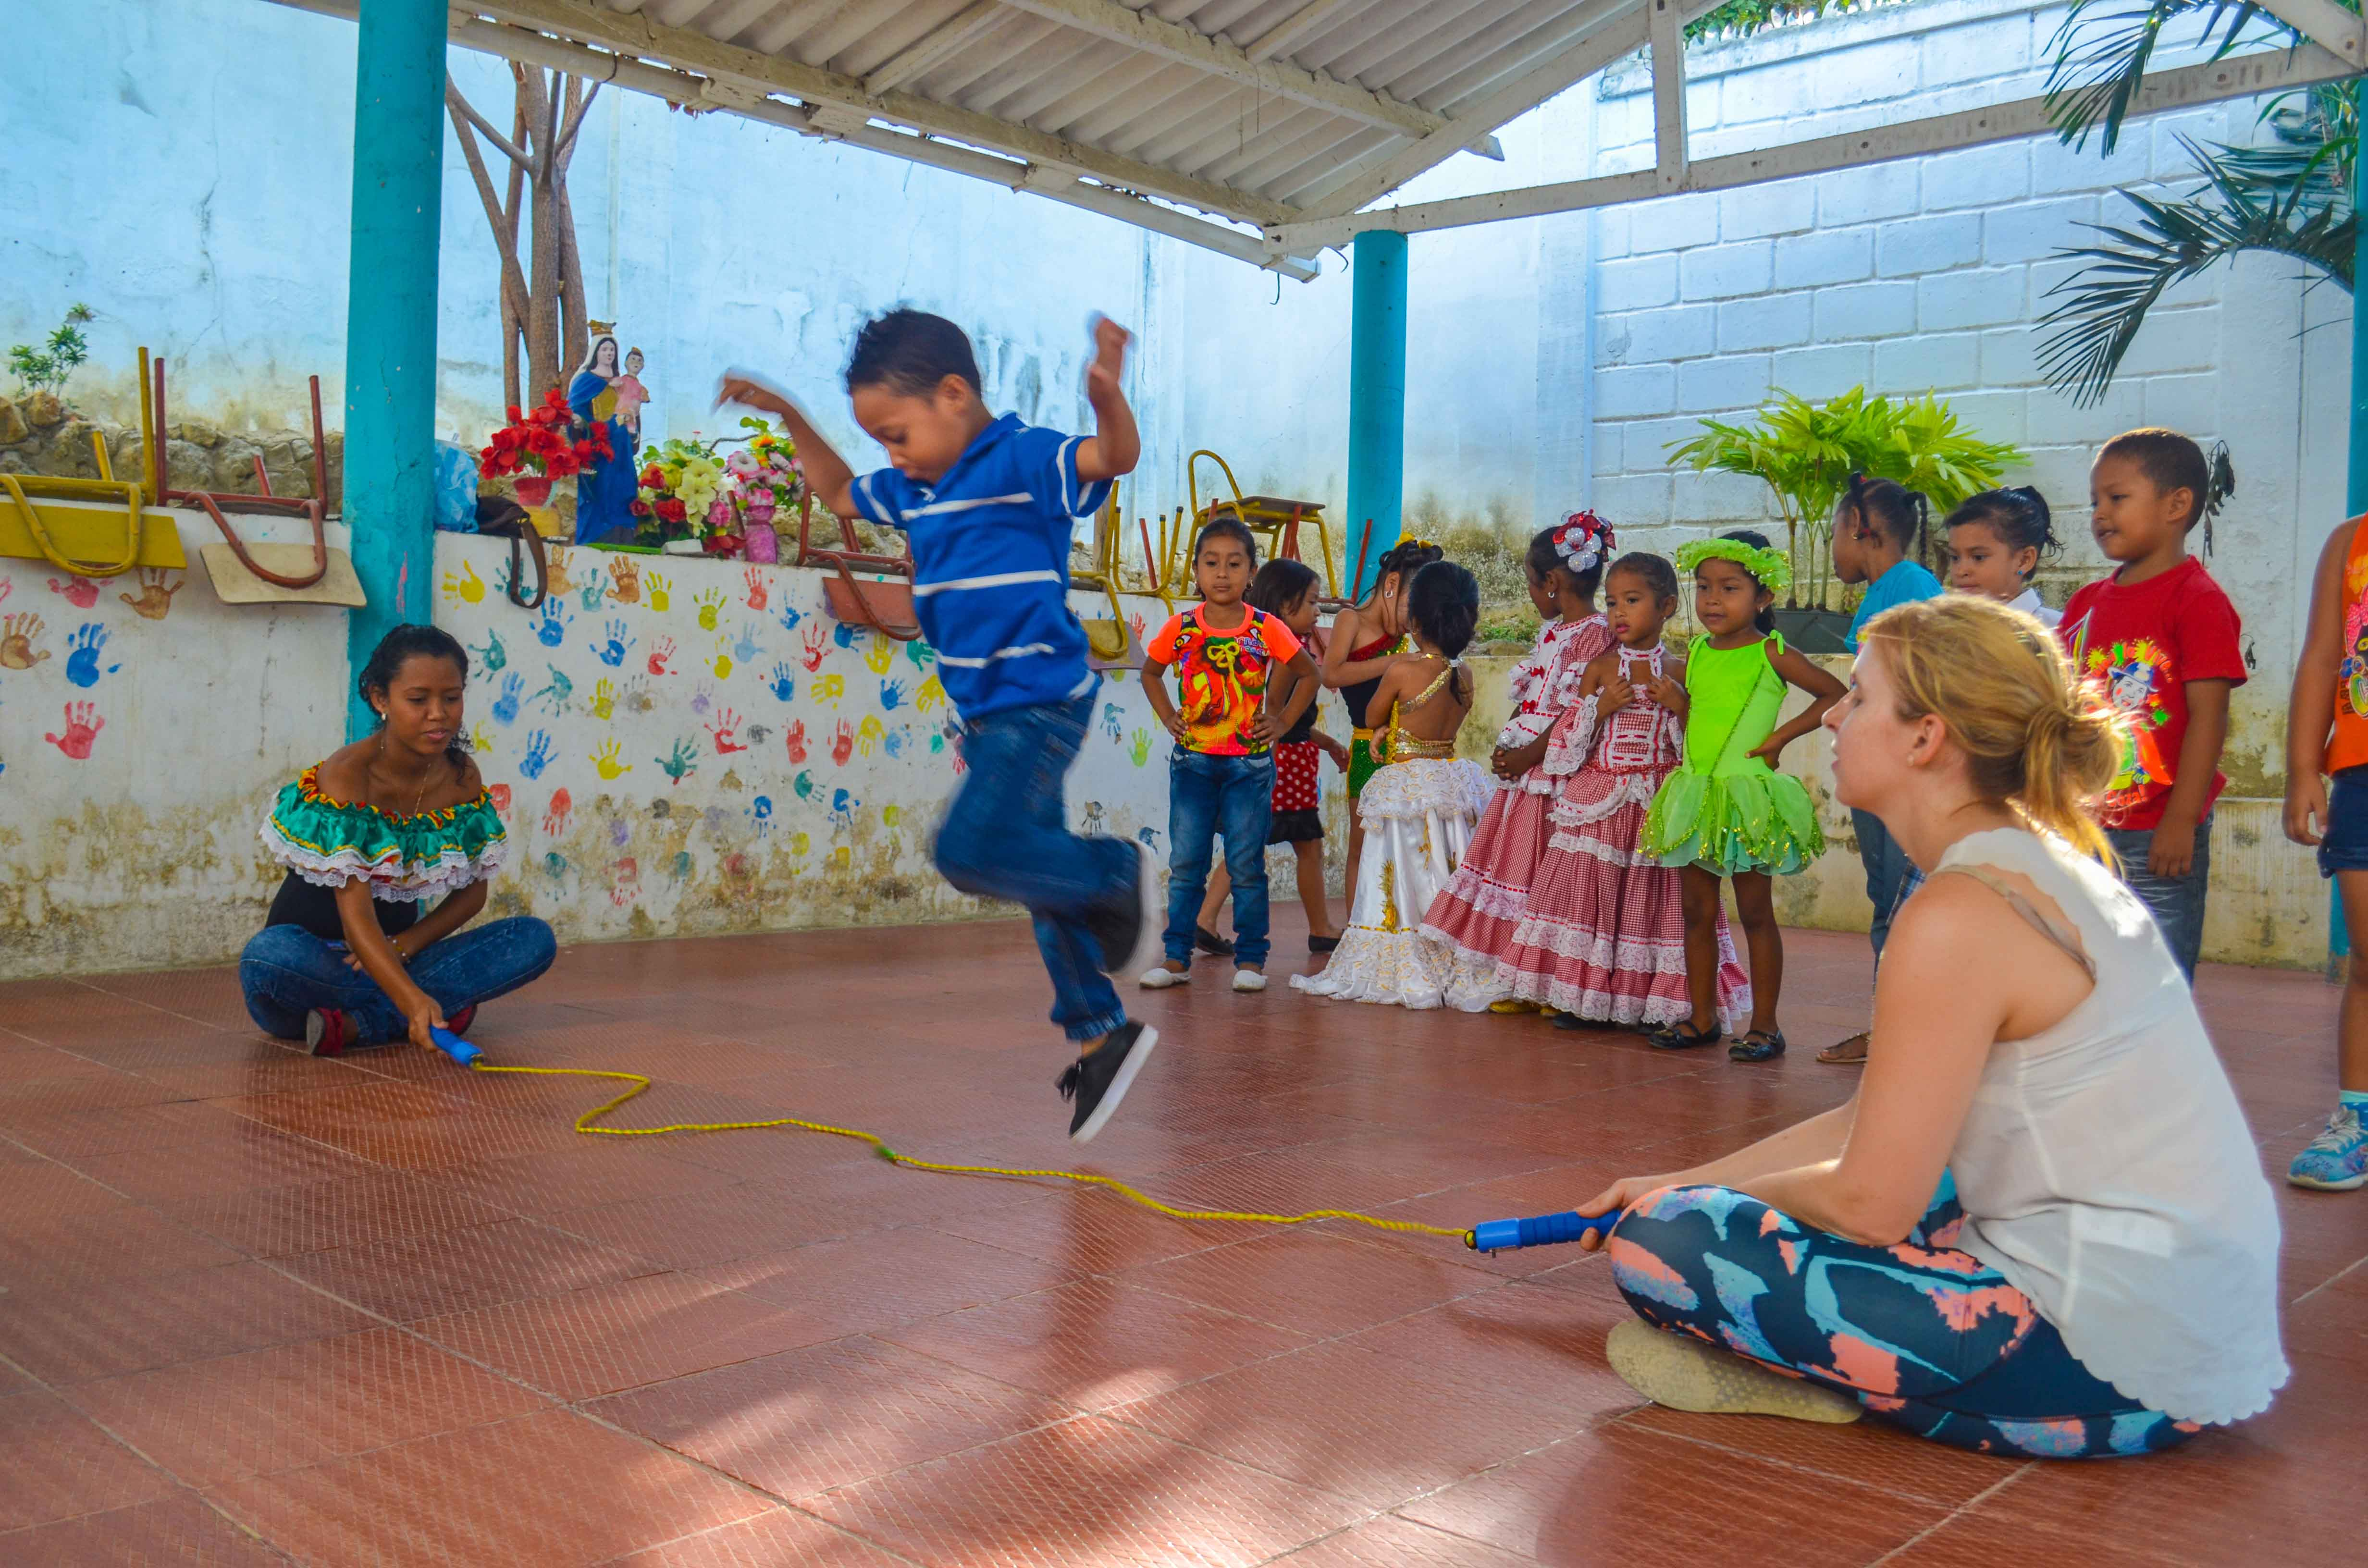 Colombian students playing jump rope